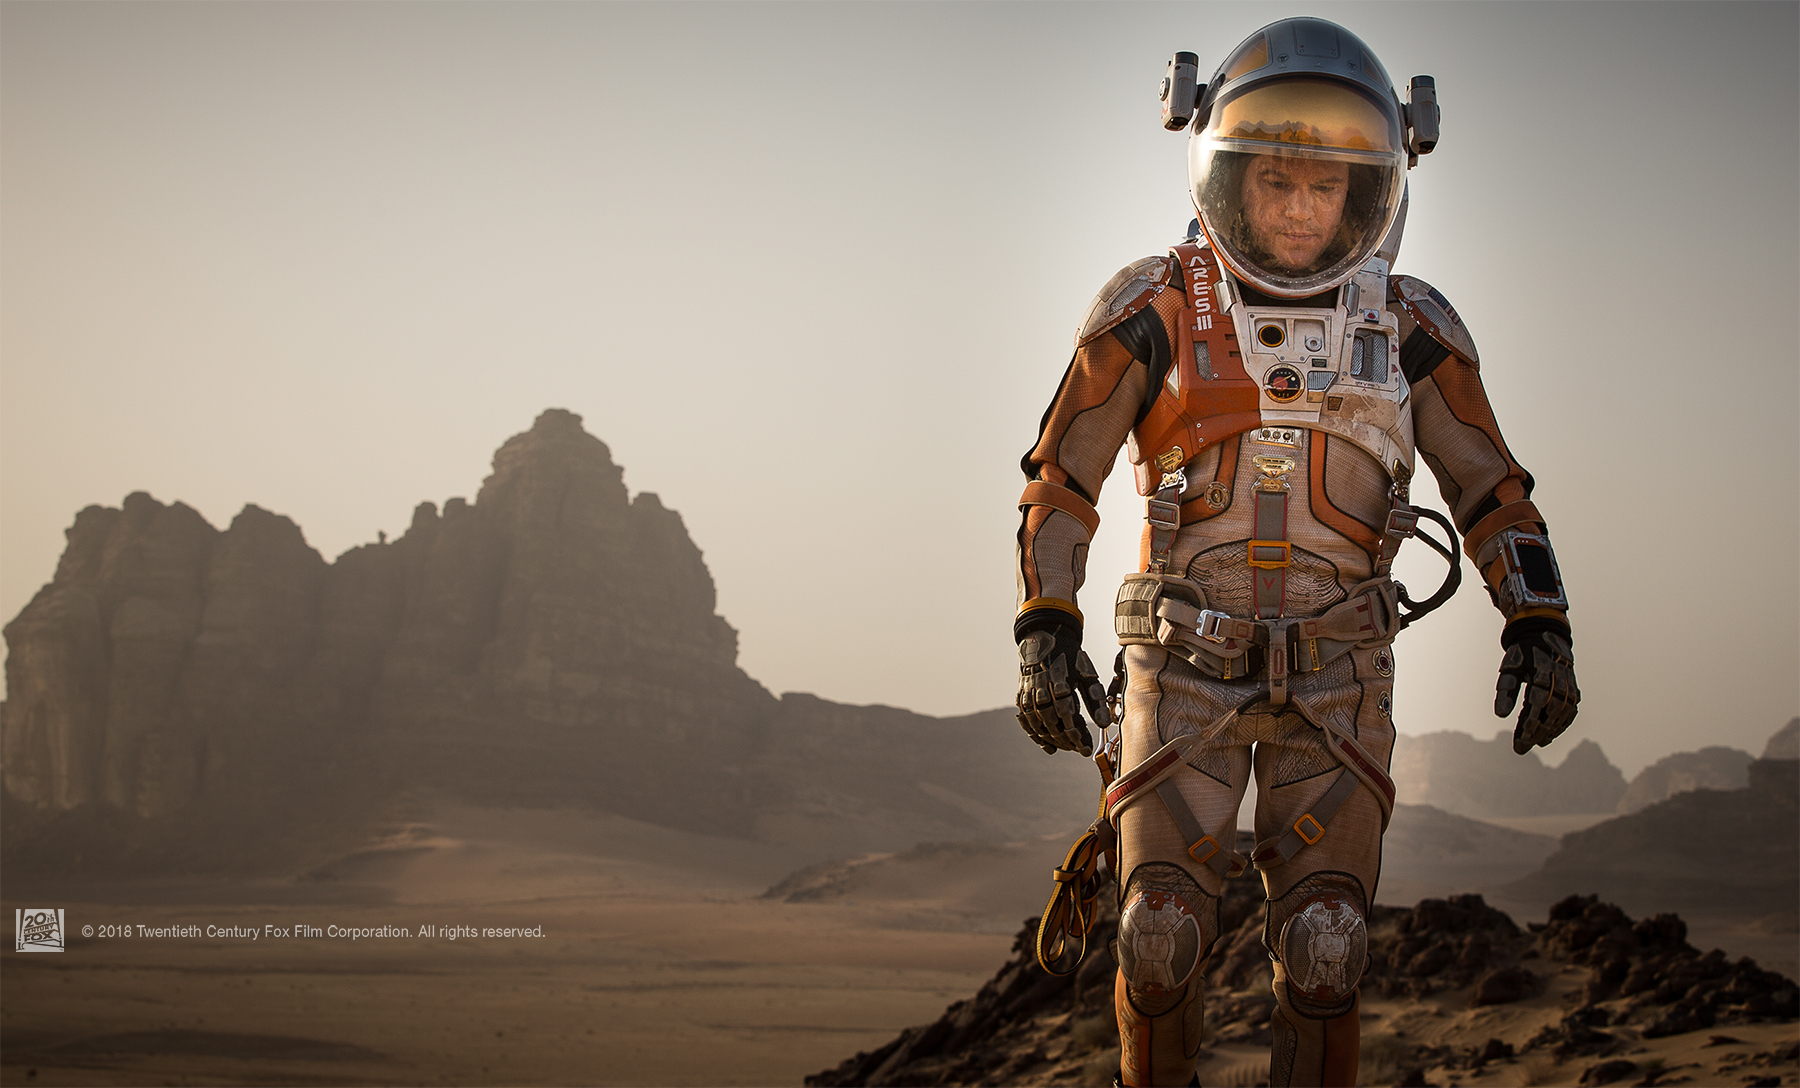 The Martian 4D Experience